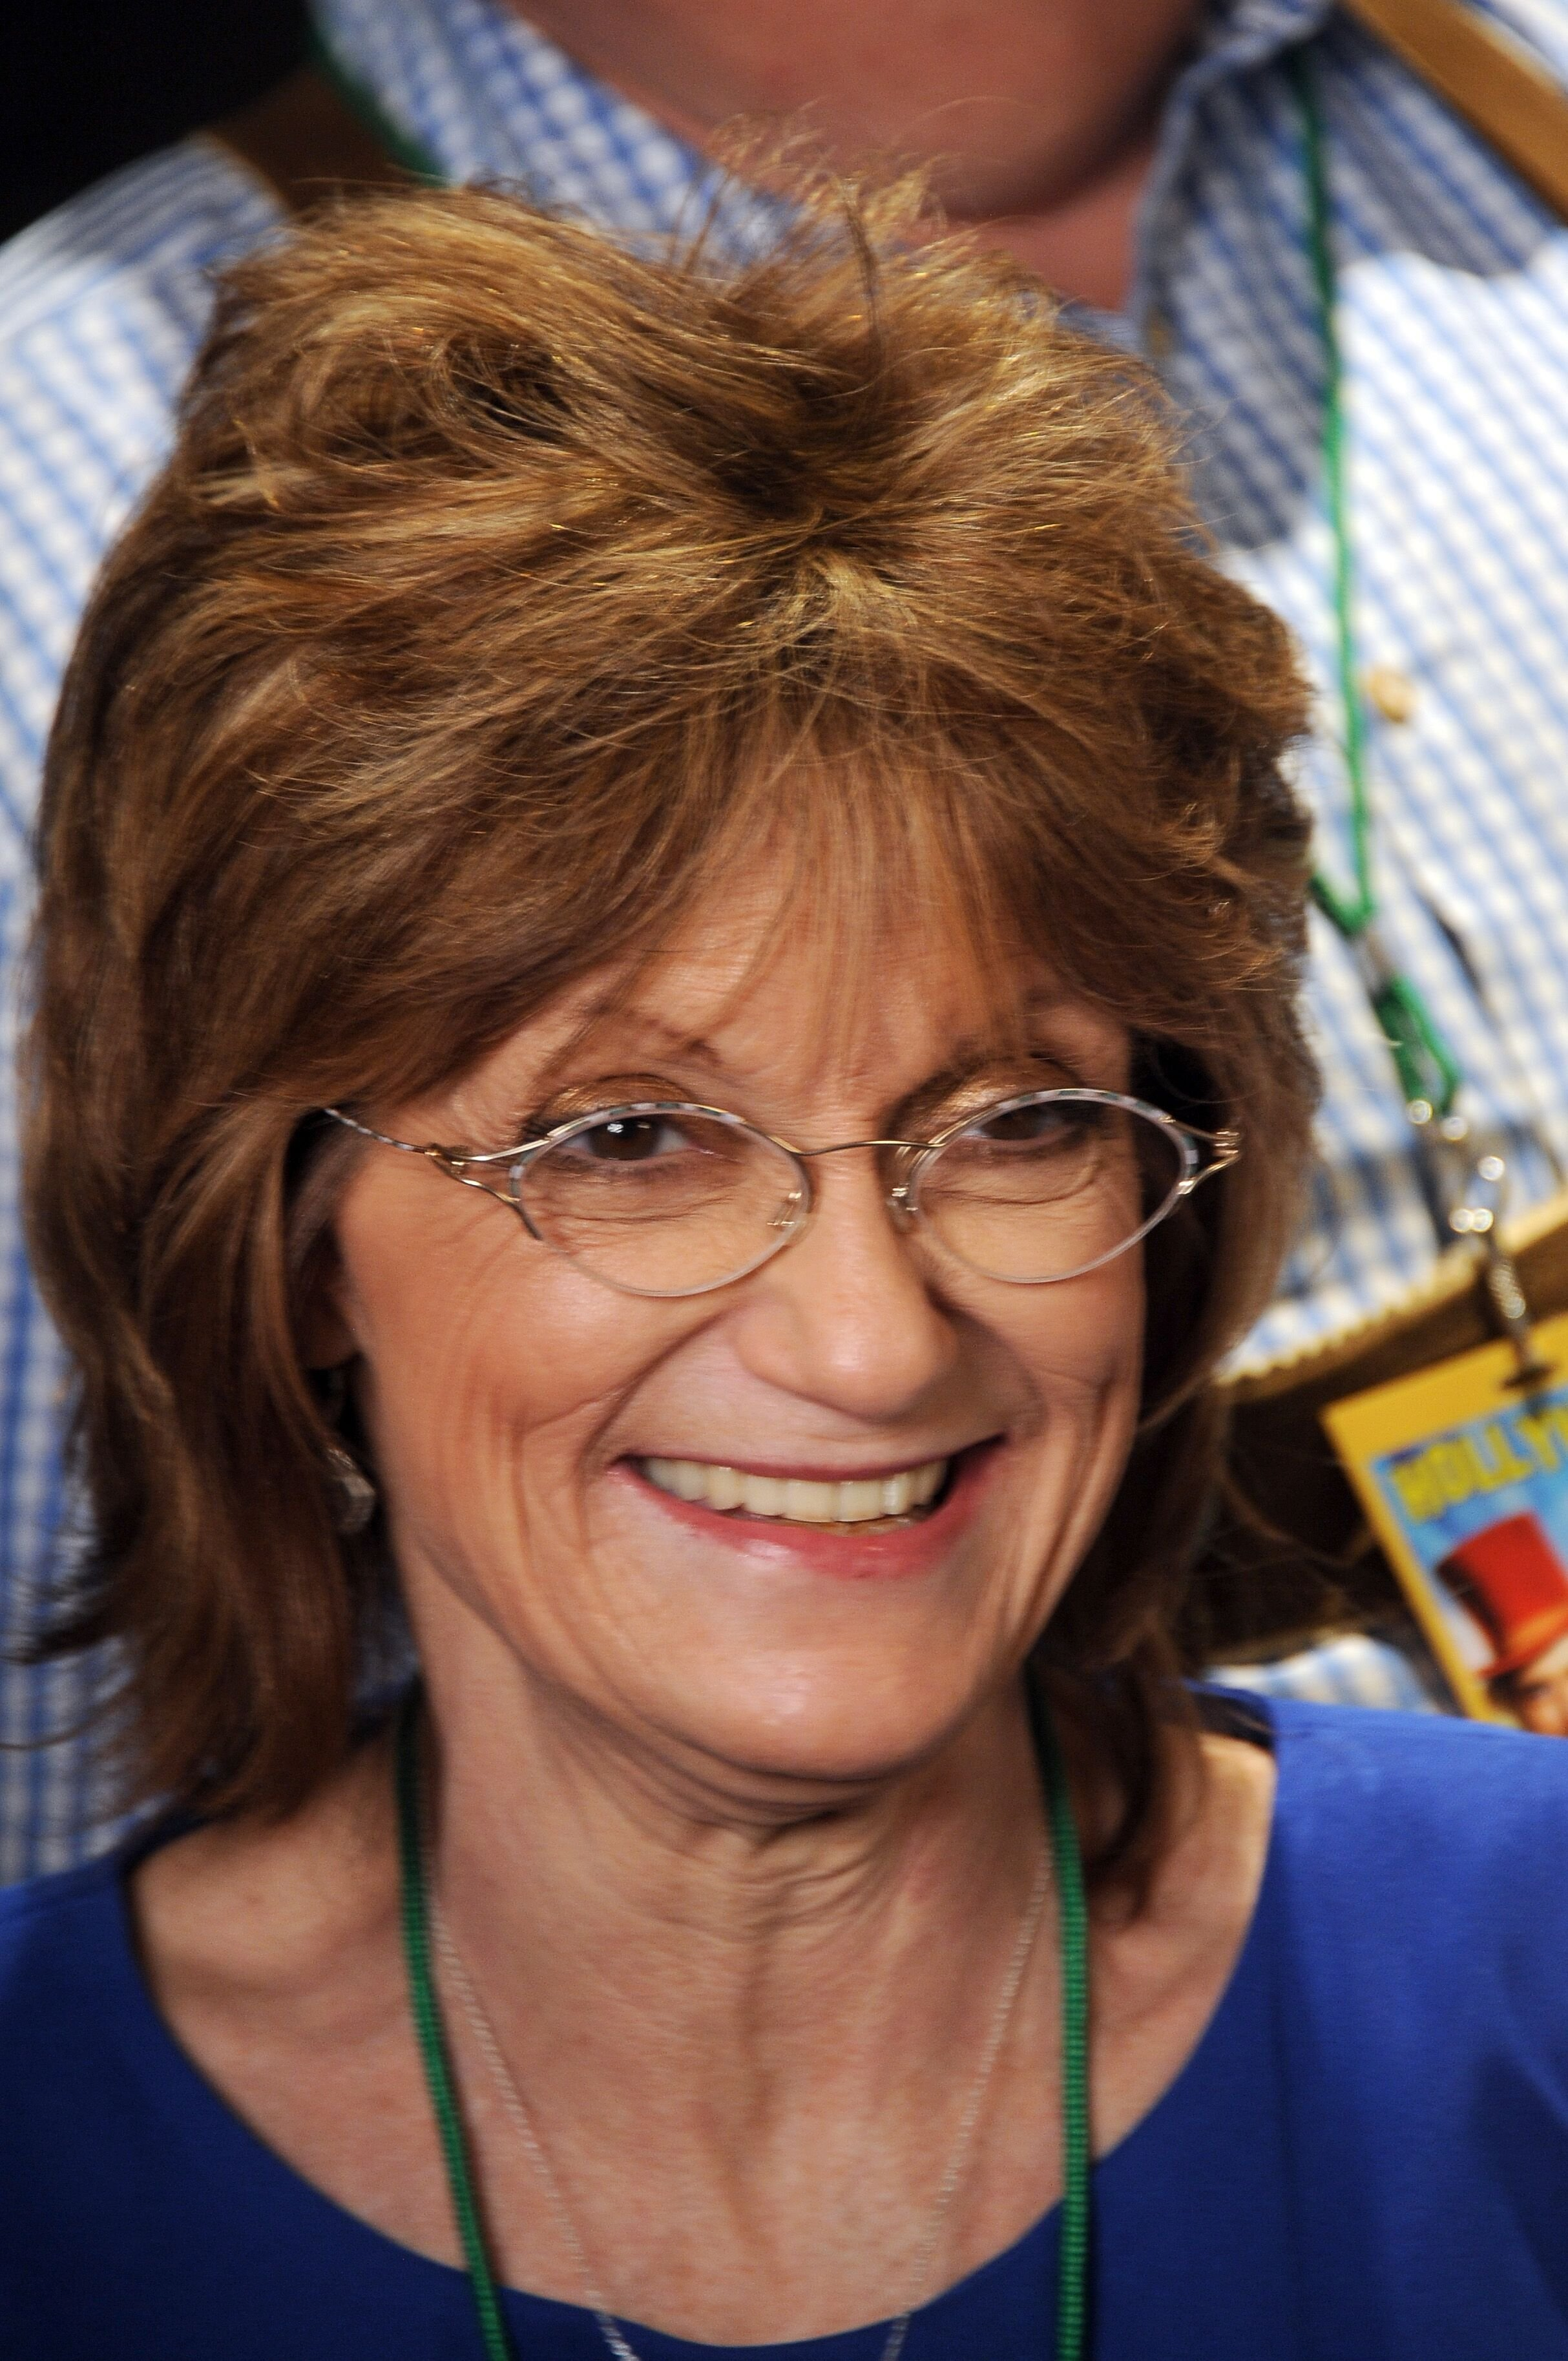 Actress Denise Nickerson at the The Hollywood Show held at Westin Los Angeles Airport on July 19, 2014 in Los Angeles, California. | Getty Images